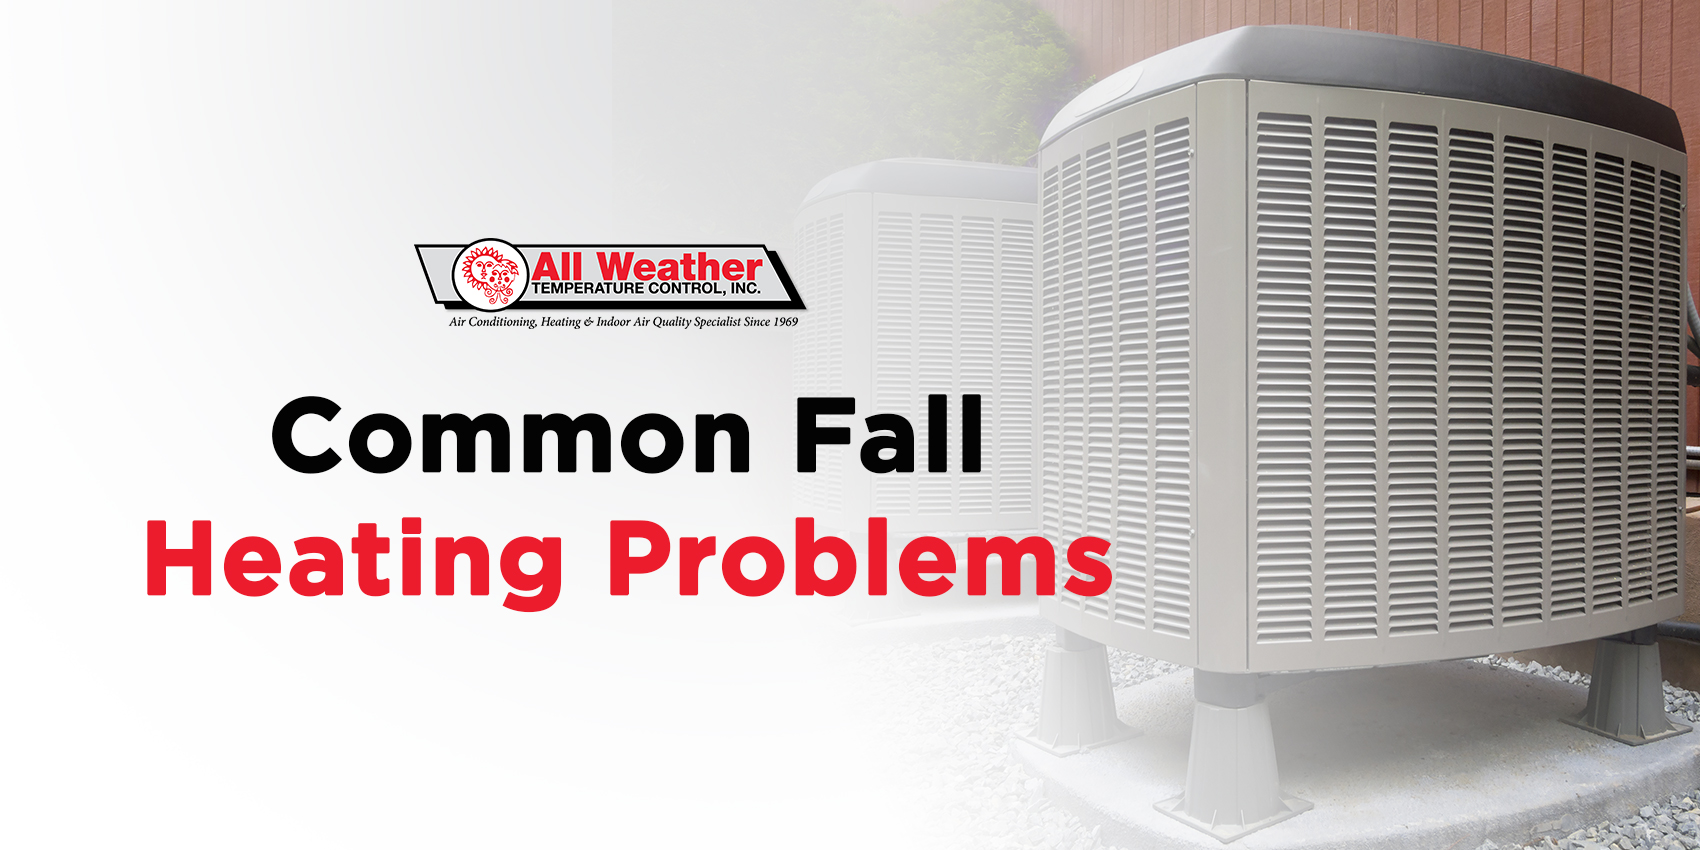 Common Fall Heating Problems